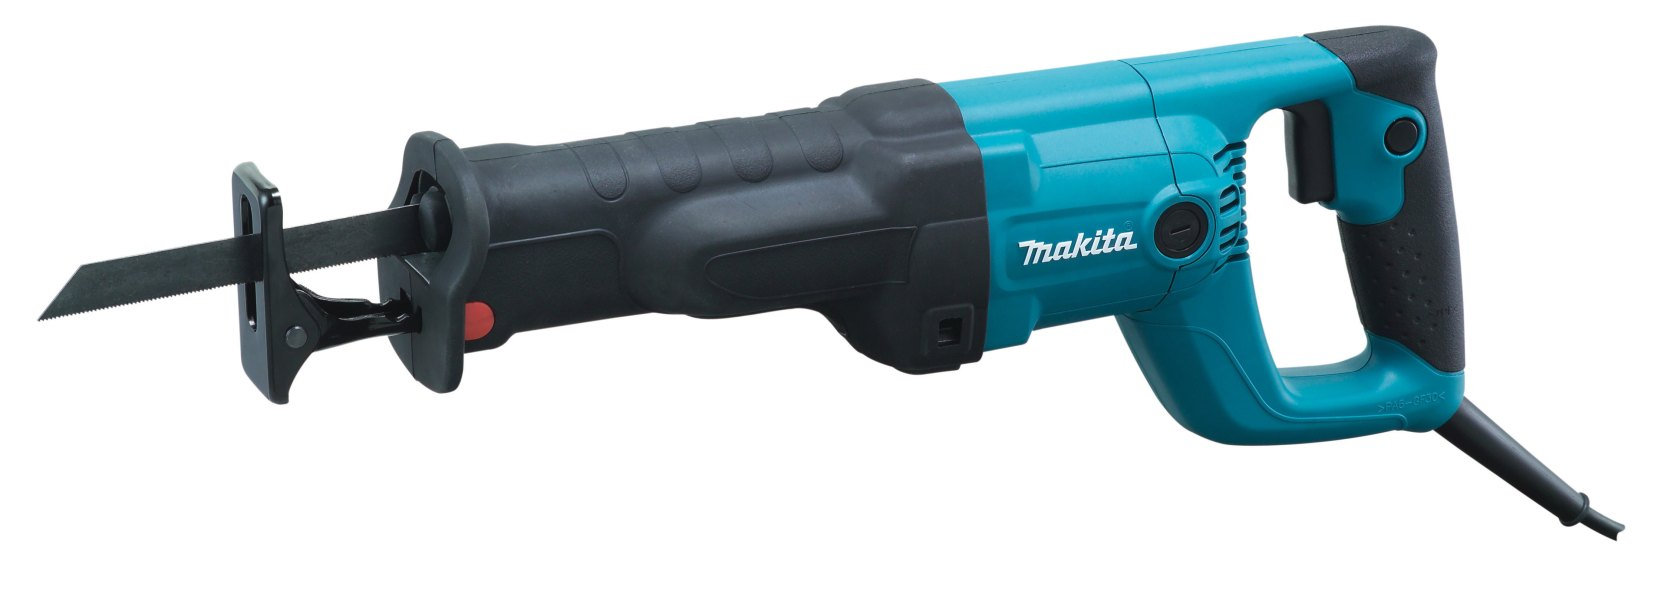 Test : Scie Sabre Makita JR3050T